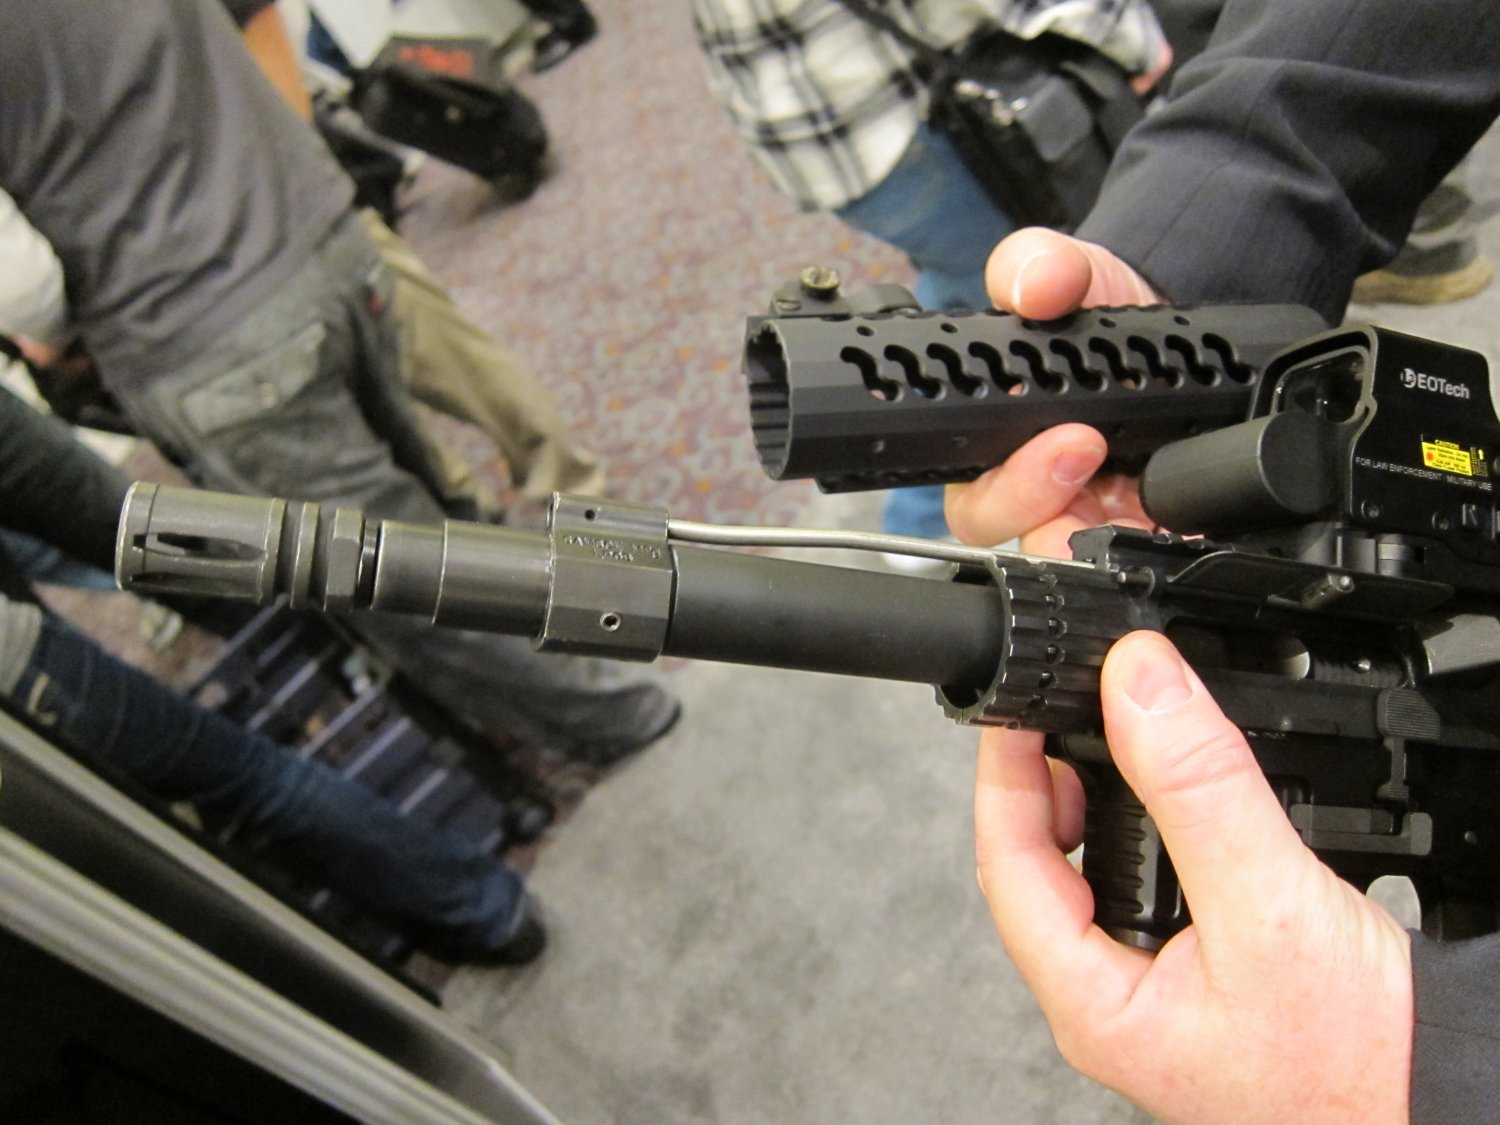 "Samson Evolution Series Rail System SHOT SHOW 2011 3 <!  :en  >Samson Evolution Series Rail System Outfitted Adams Arms 7.5"" PDW Piston AR SBR for Dynamic Close Quarters Battle (CQB) and Tactical Training: DARC Ready!<!  :  >"